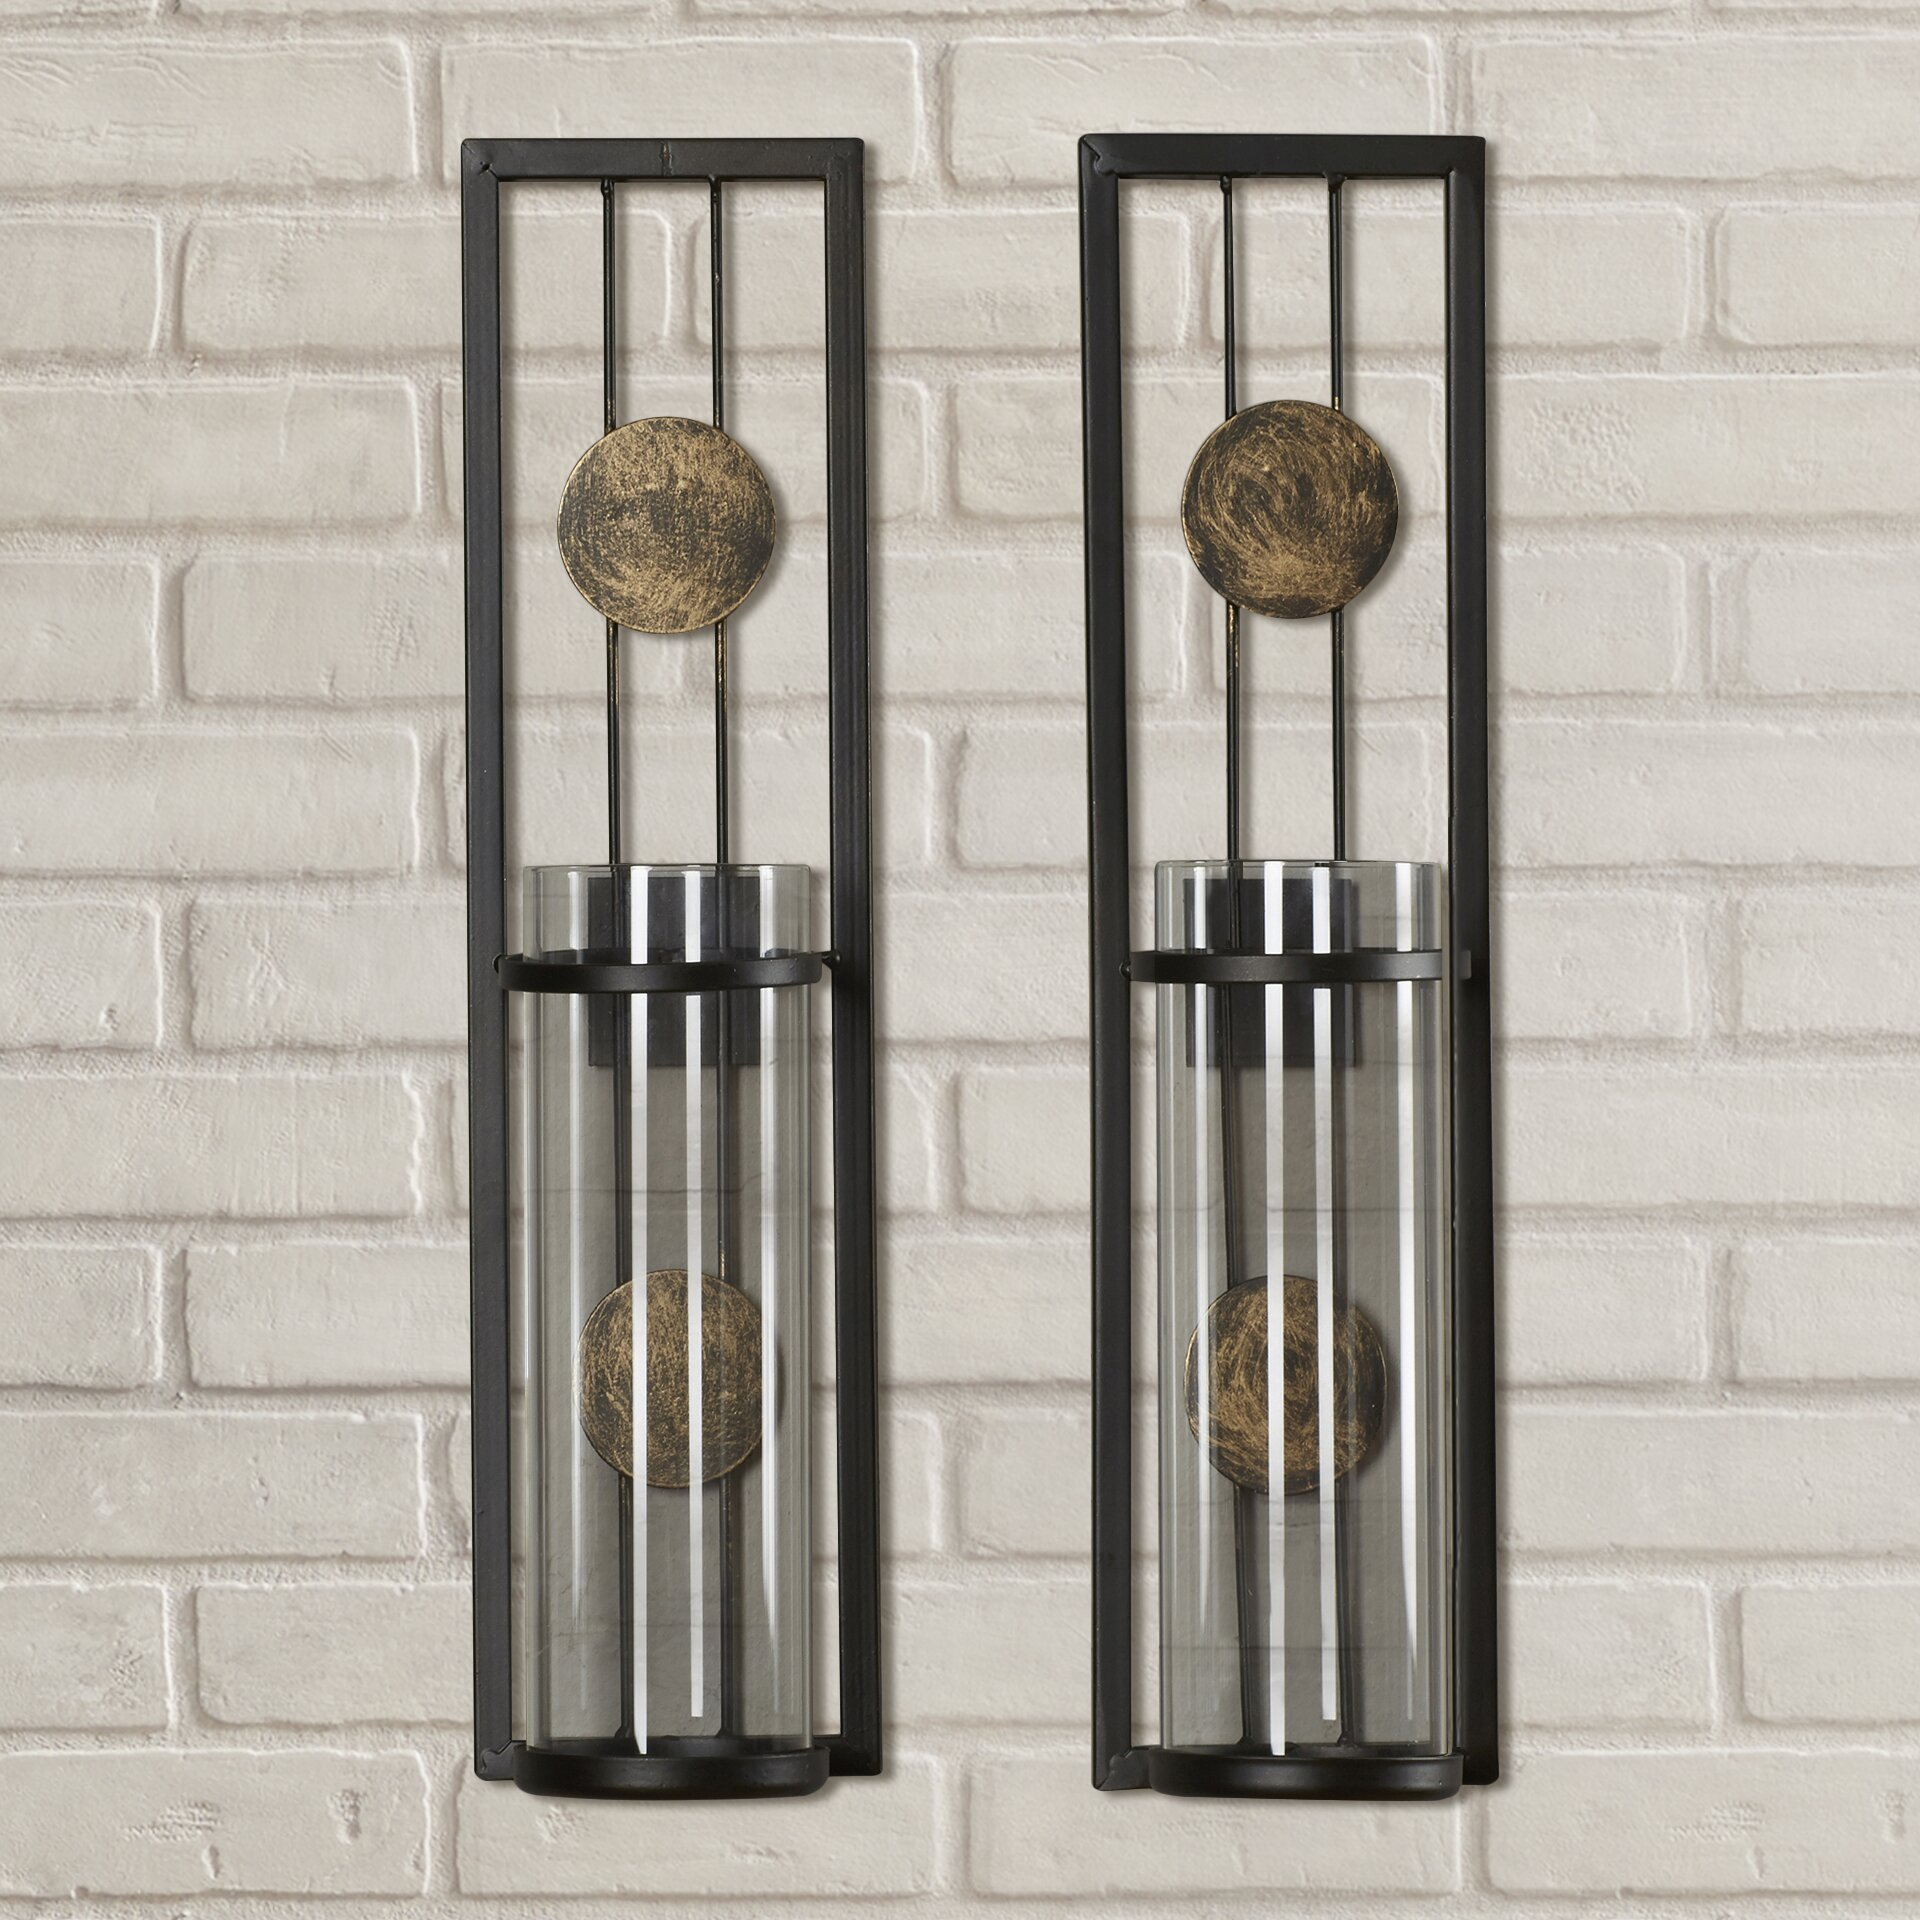 Brayden Studio Contemporary Wall Sconce Candle Holder & Reviews Wayfair.ca